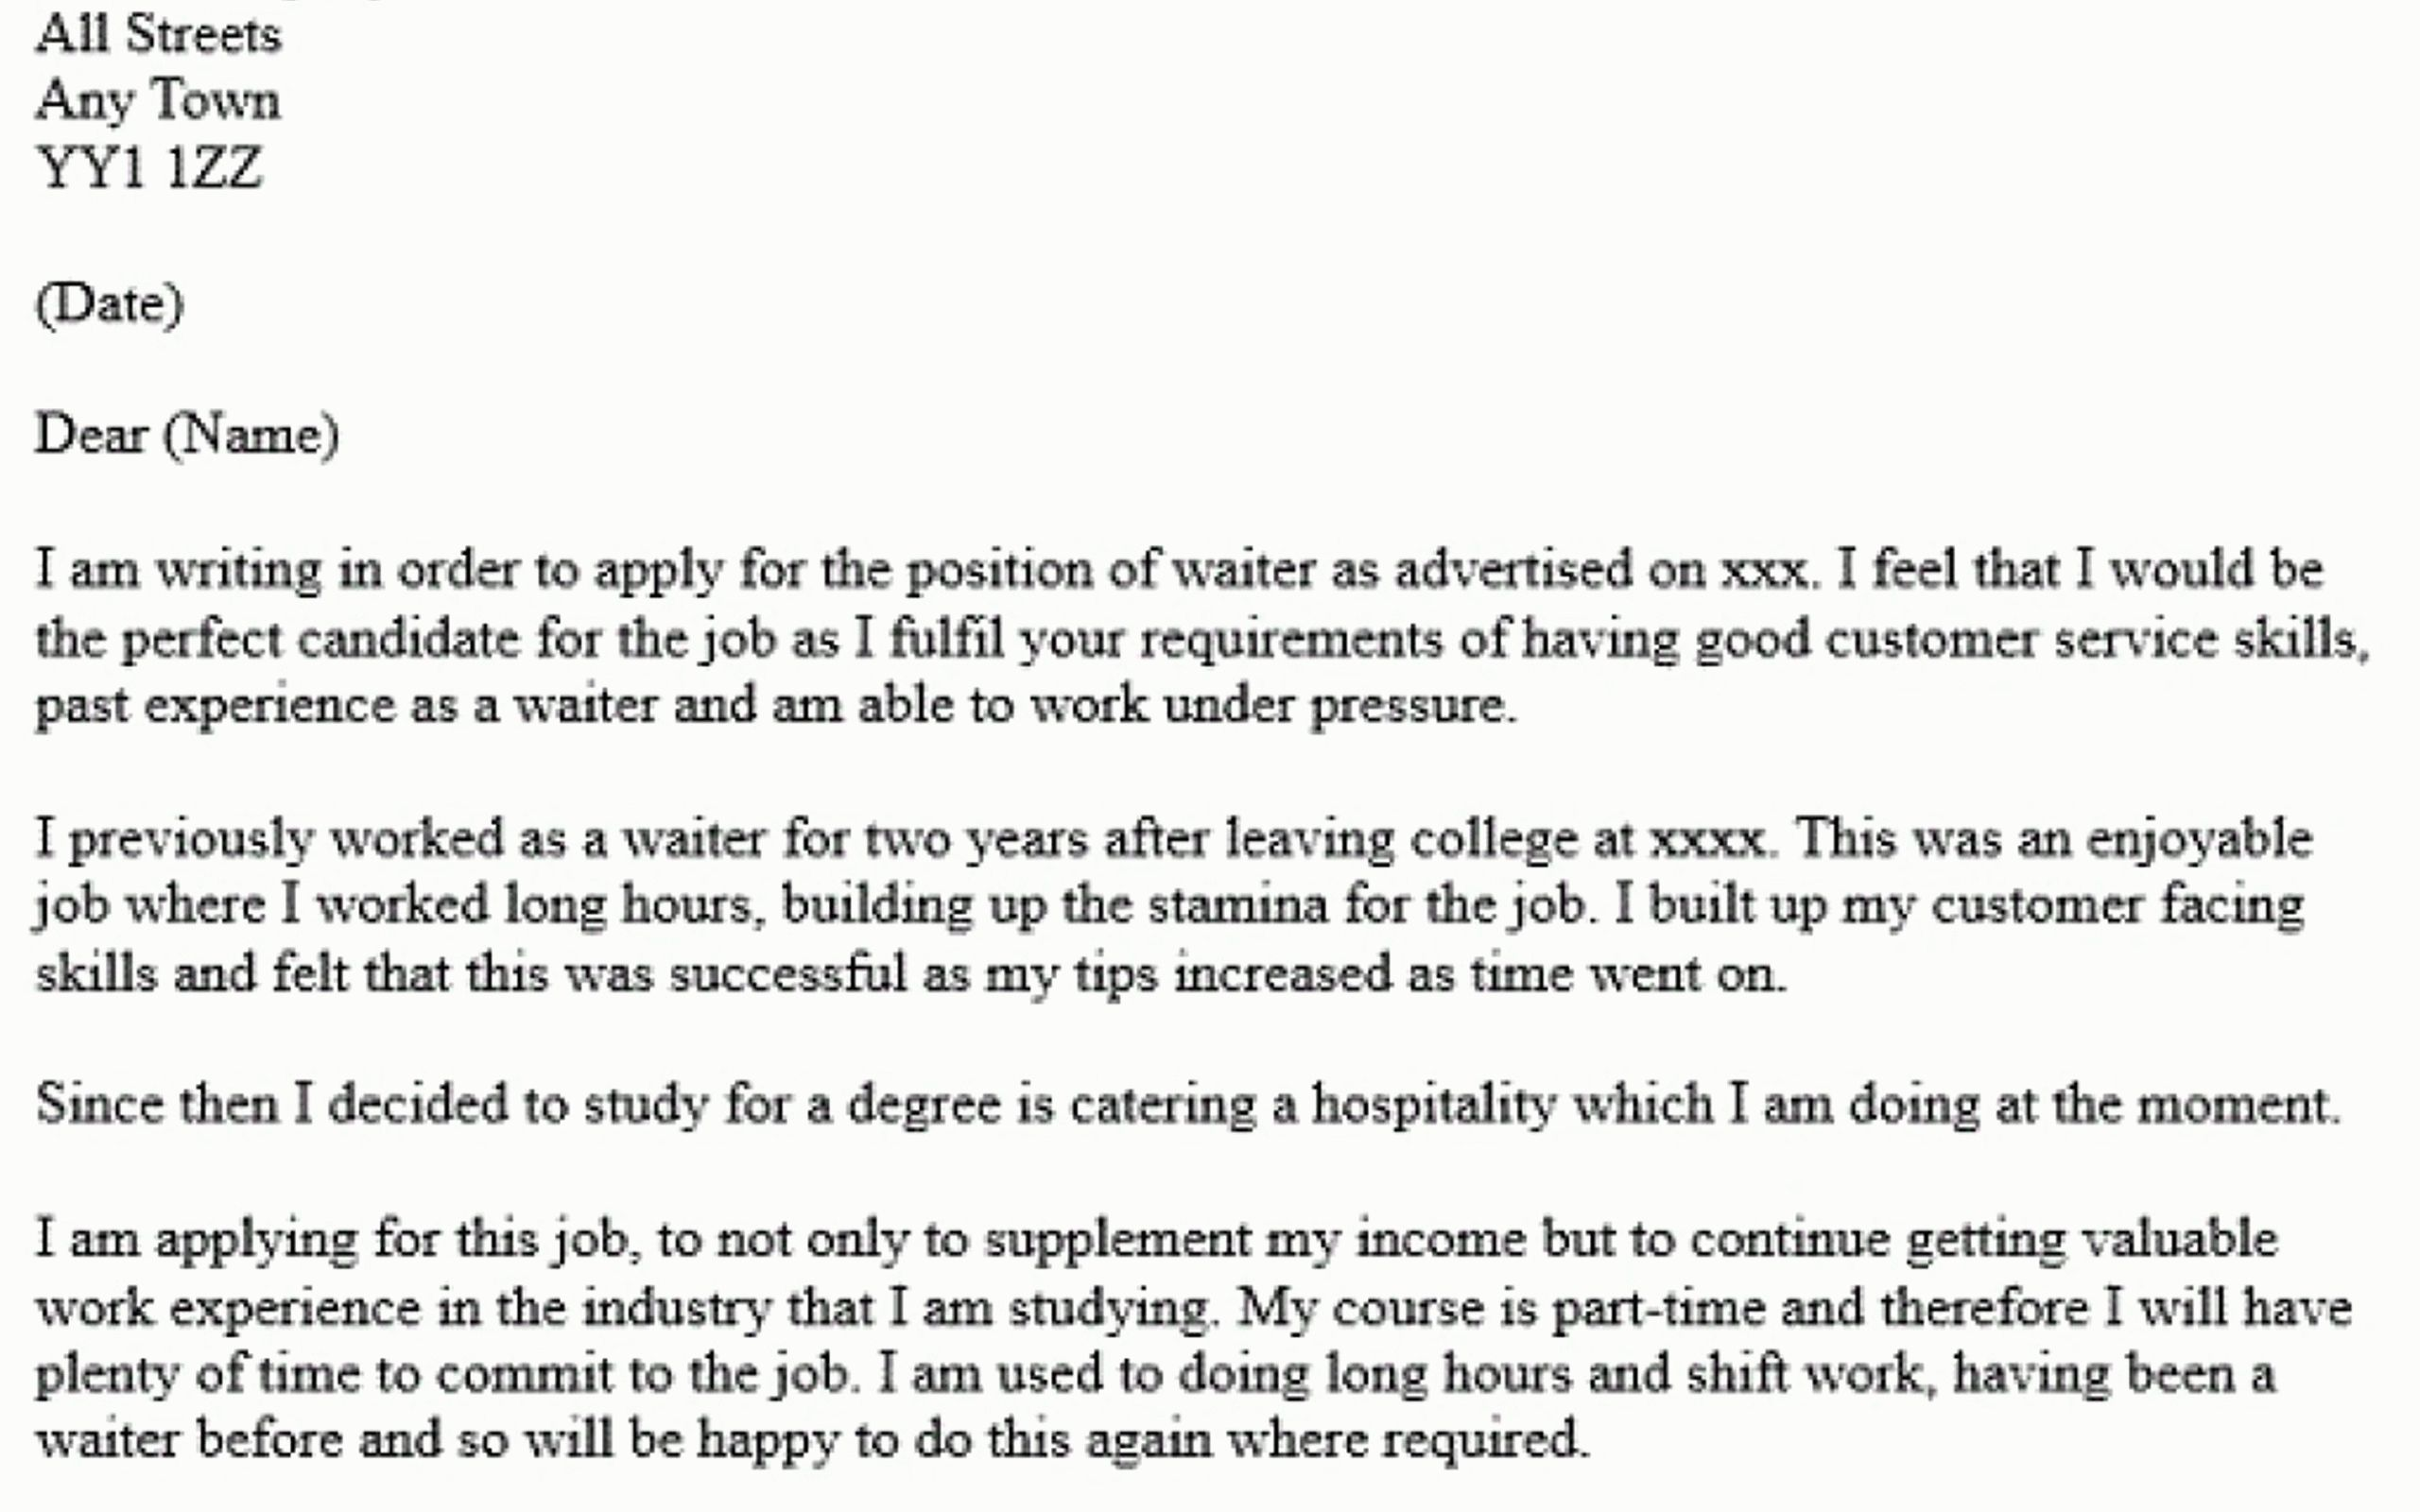 Waiter cover letter sample choice image letter samples format cover letter waitress example images letter samples format cover letter waitress example ideas discipline in schools madrichimfo Gallery